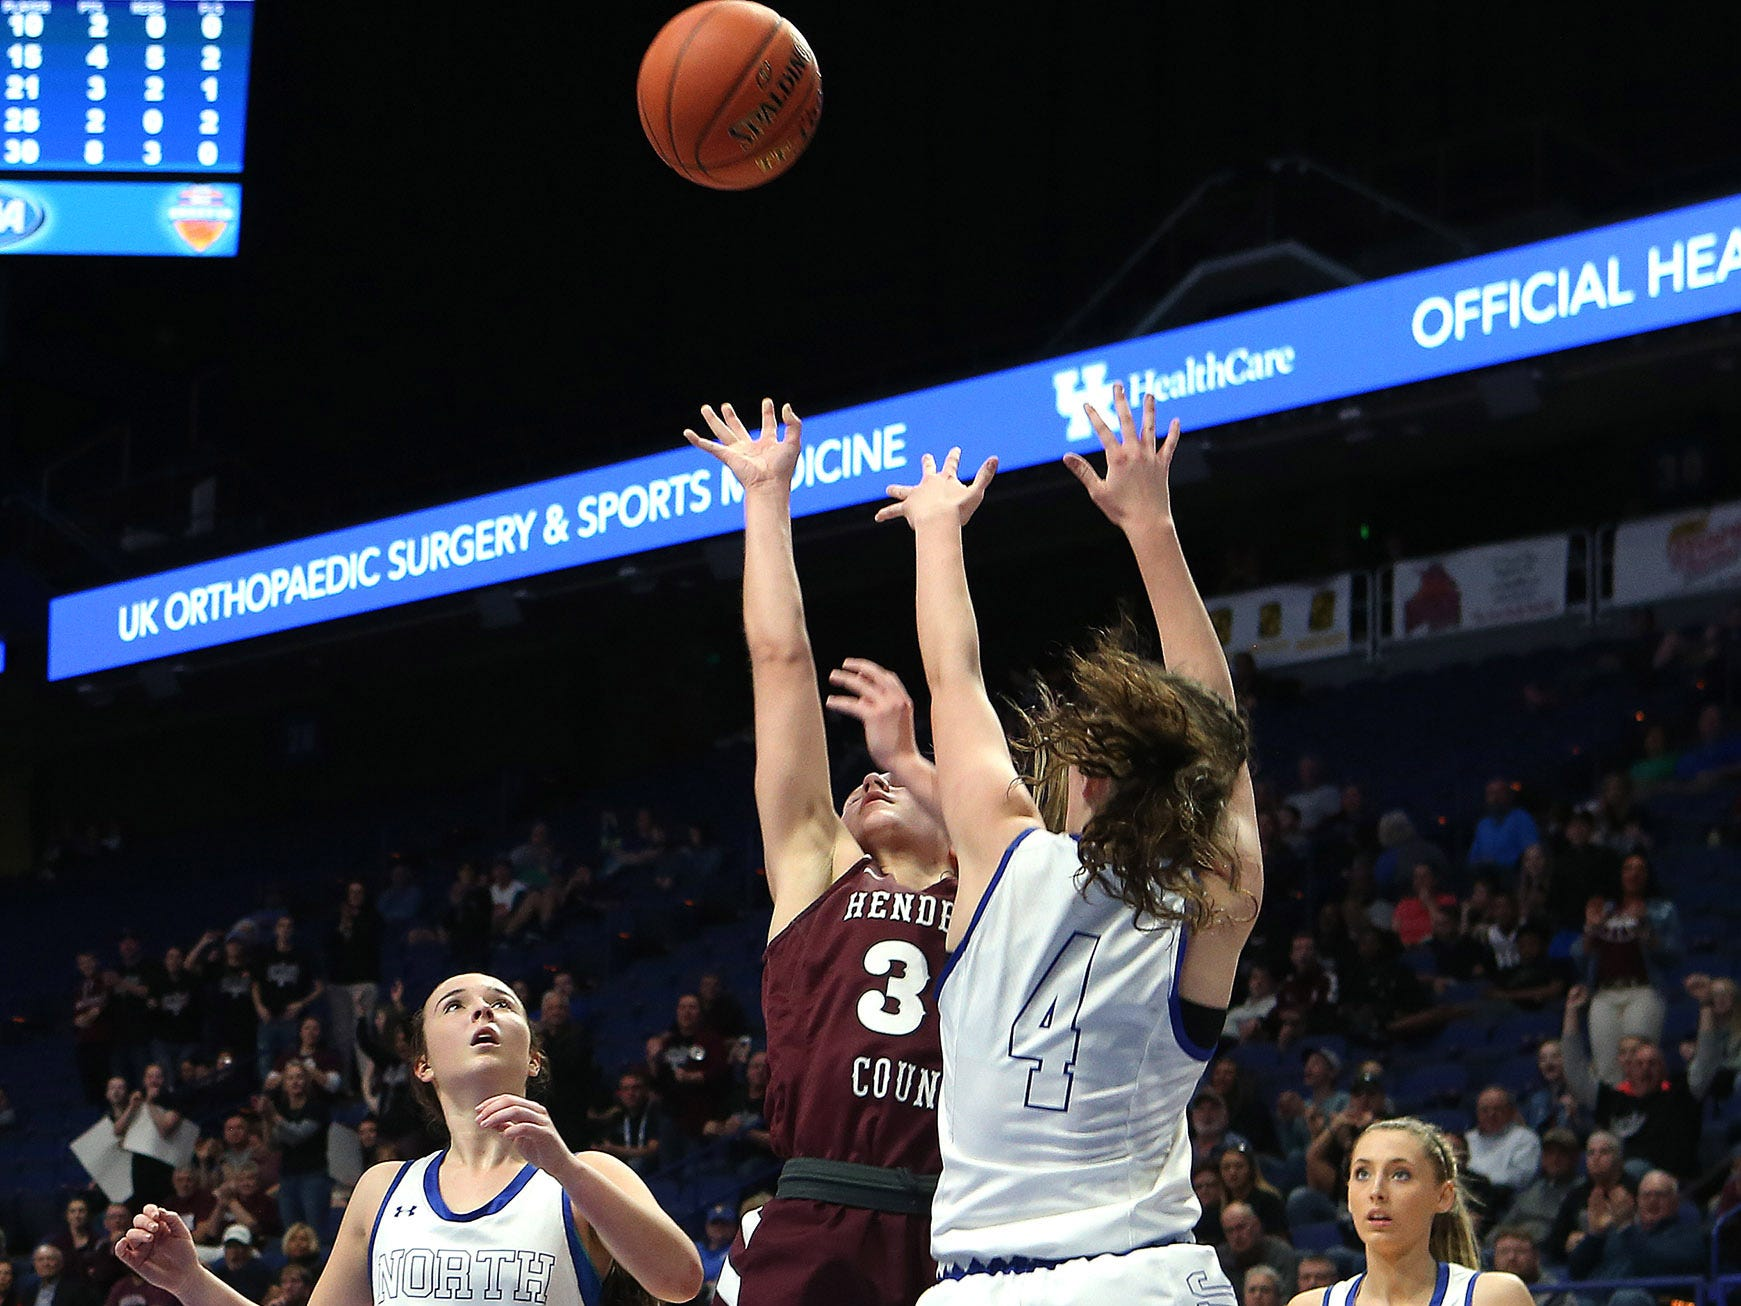 Henderson County's Emilee Hope shot Friday against North Laurel in Game 8 of the KHSAA Girls' Sweet 16 at Rupp Arena in Lexington.